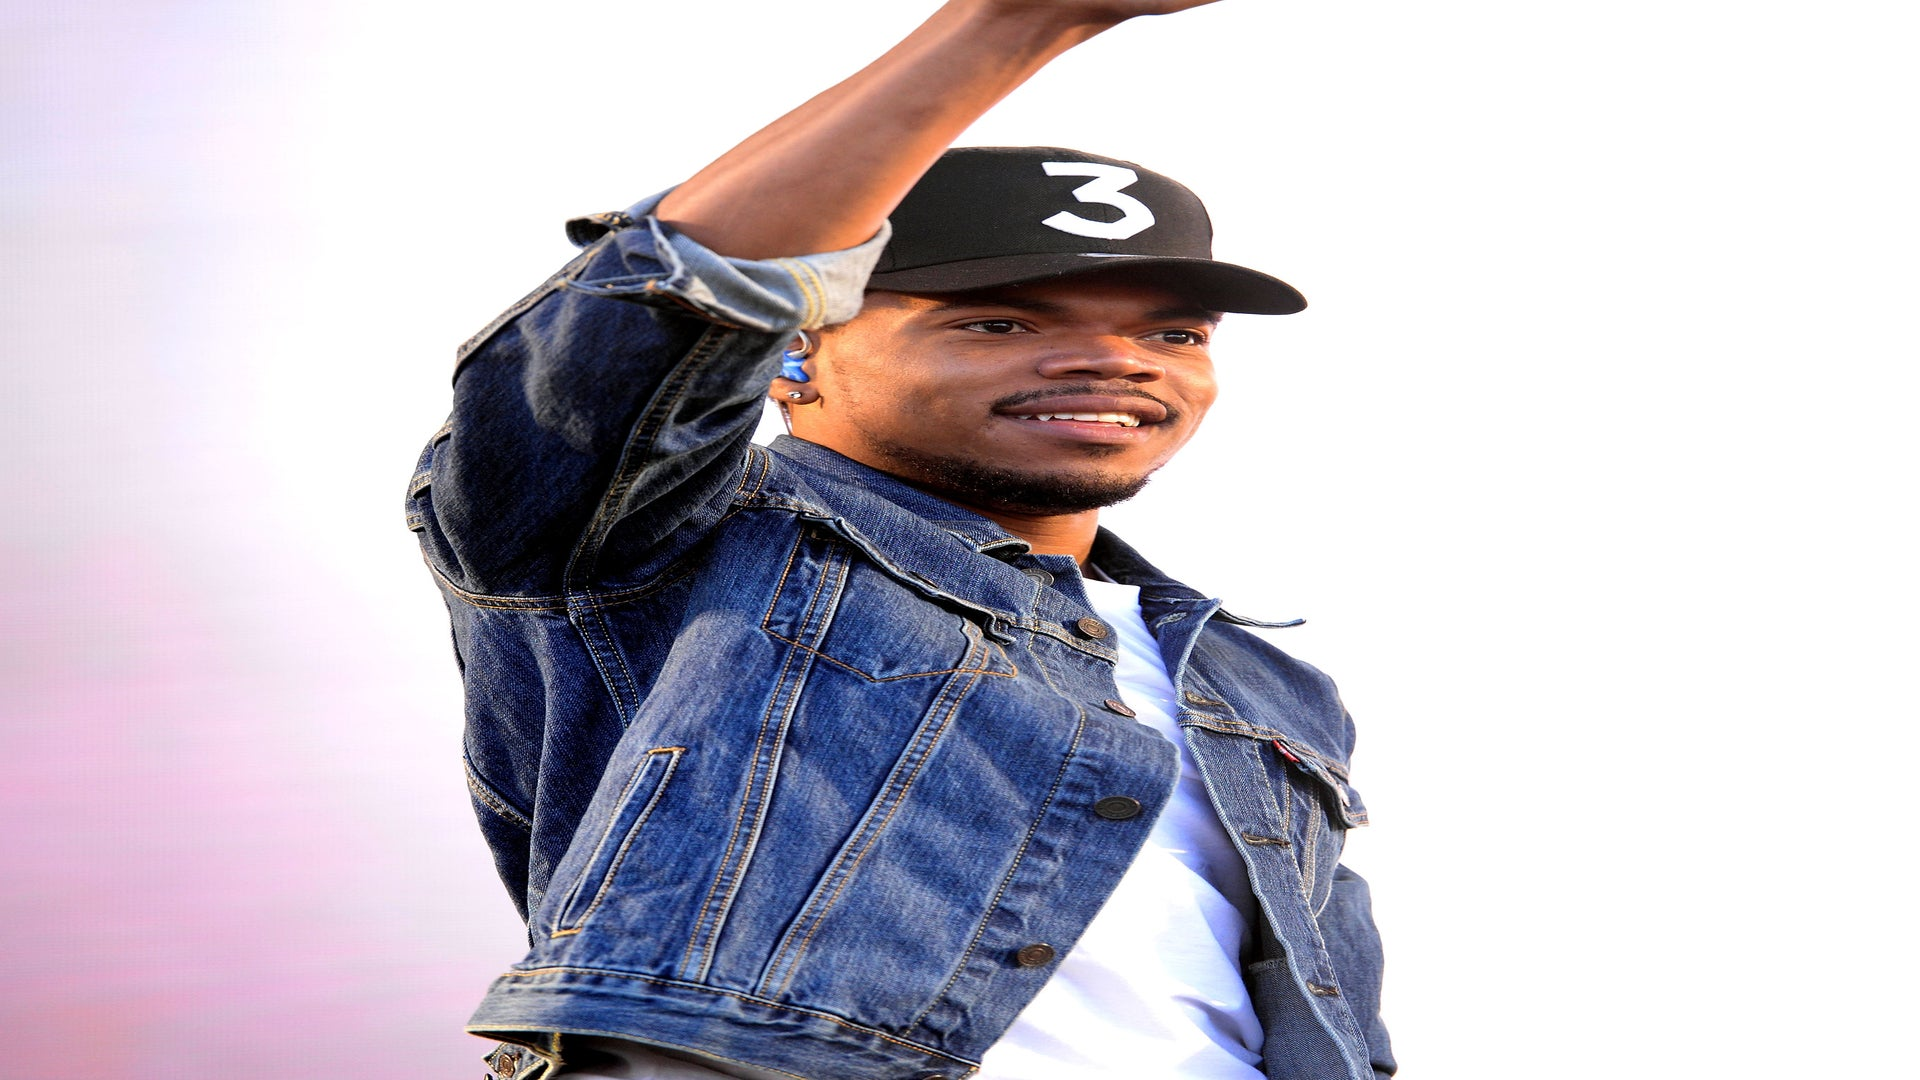 Chance the Rapper's Girlfriend Makes Rare Appearance on His Instagram Feed